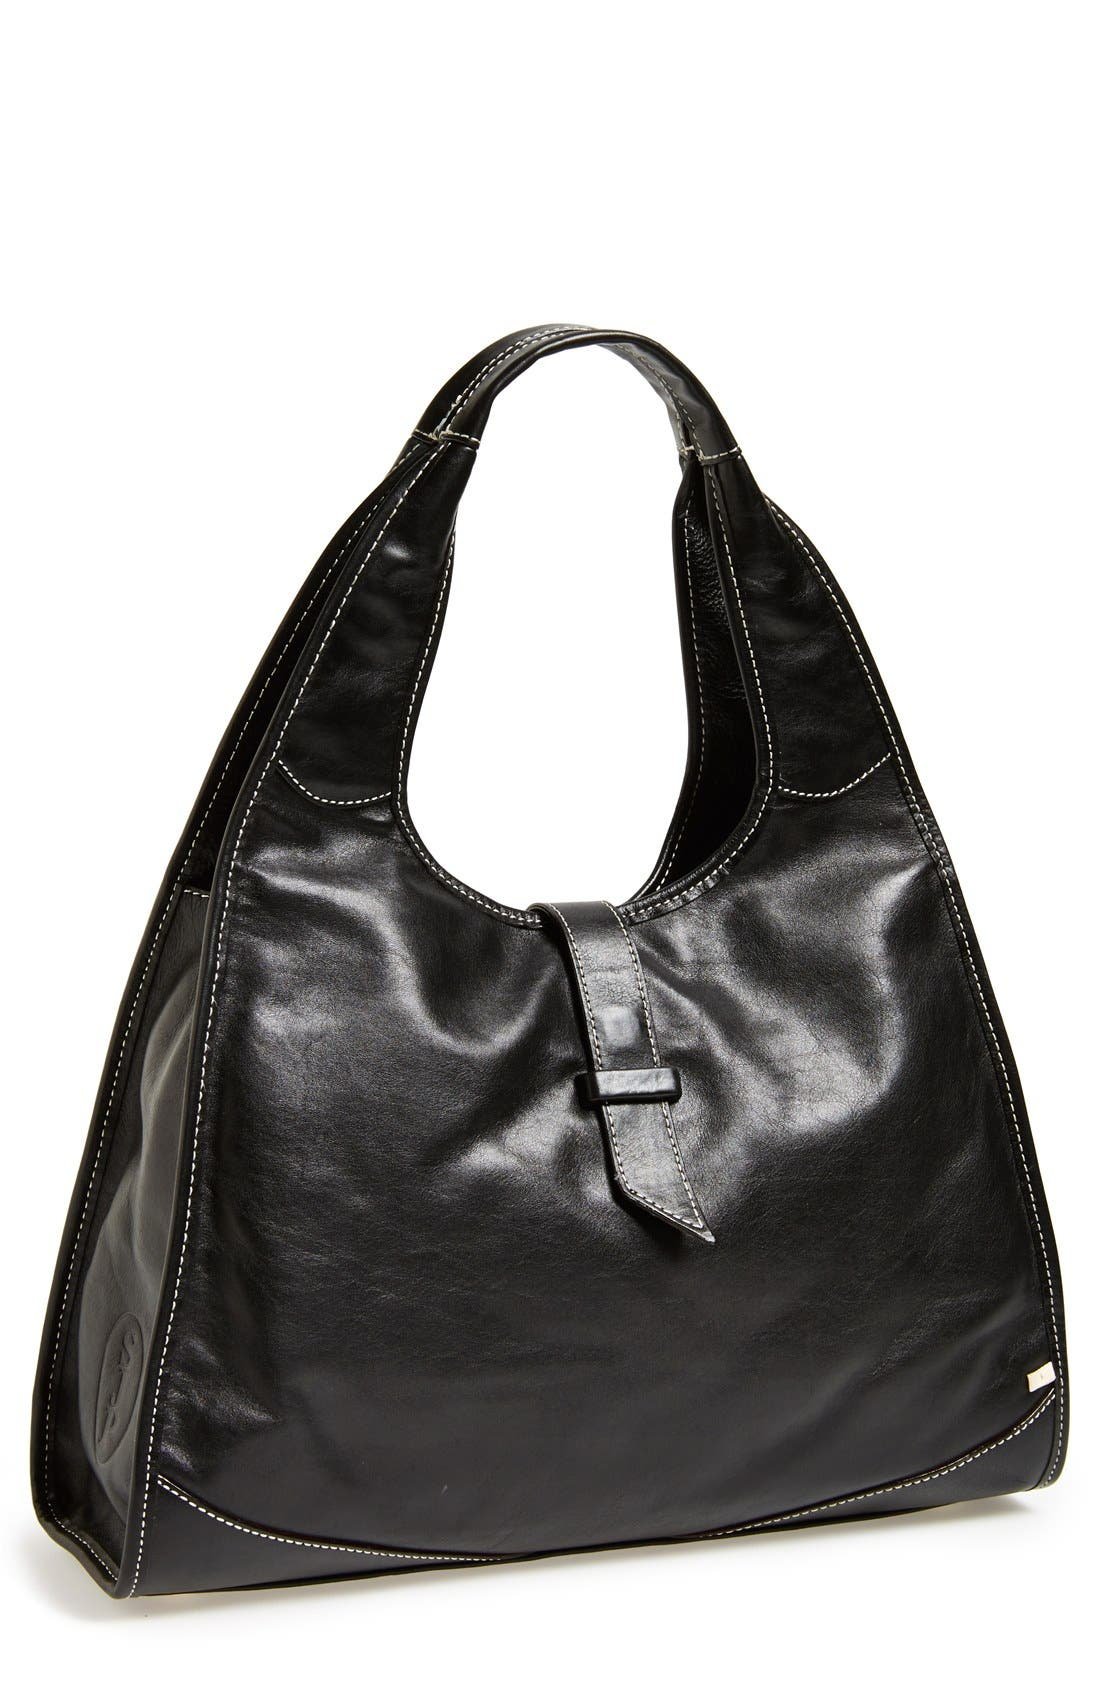 SJP BY SARAH JESSICA PARKER, 'New Yorker' Leather Hobo, Main thumbnail 1, color, 001